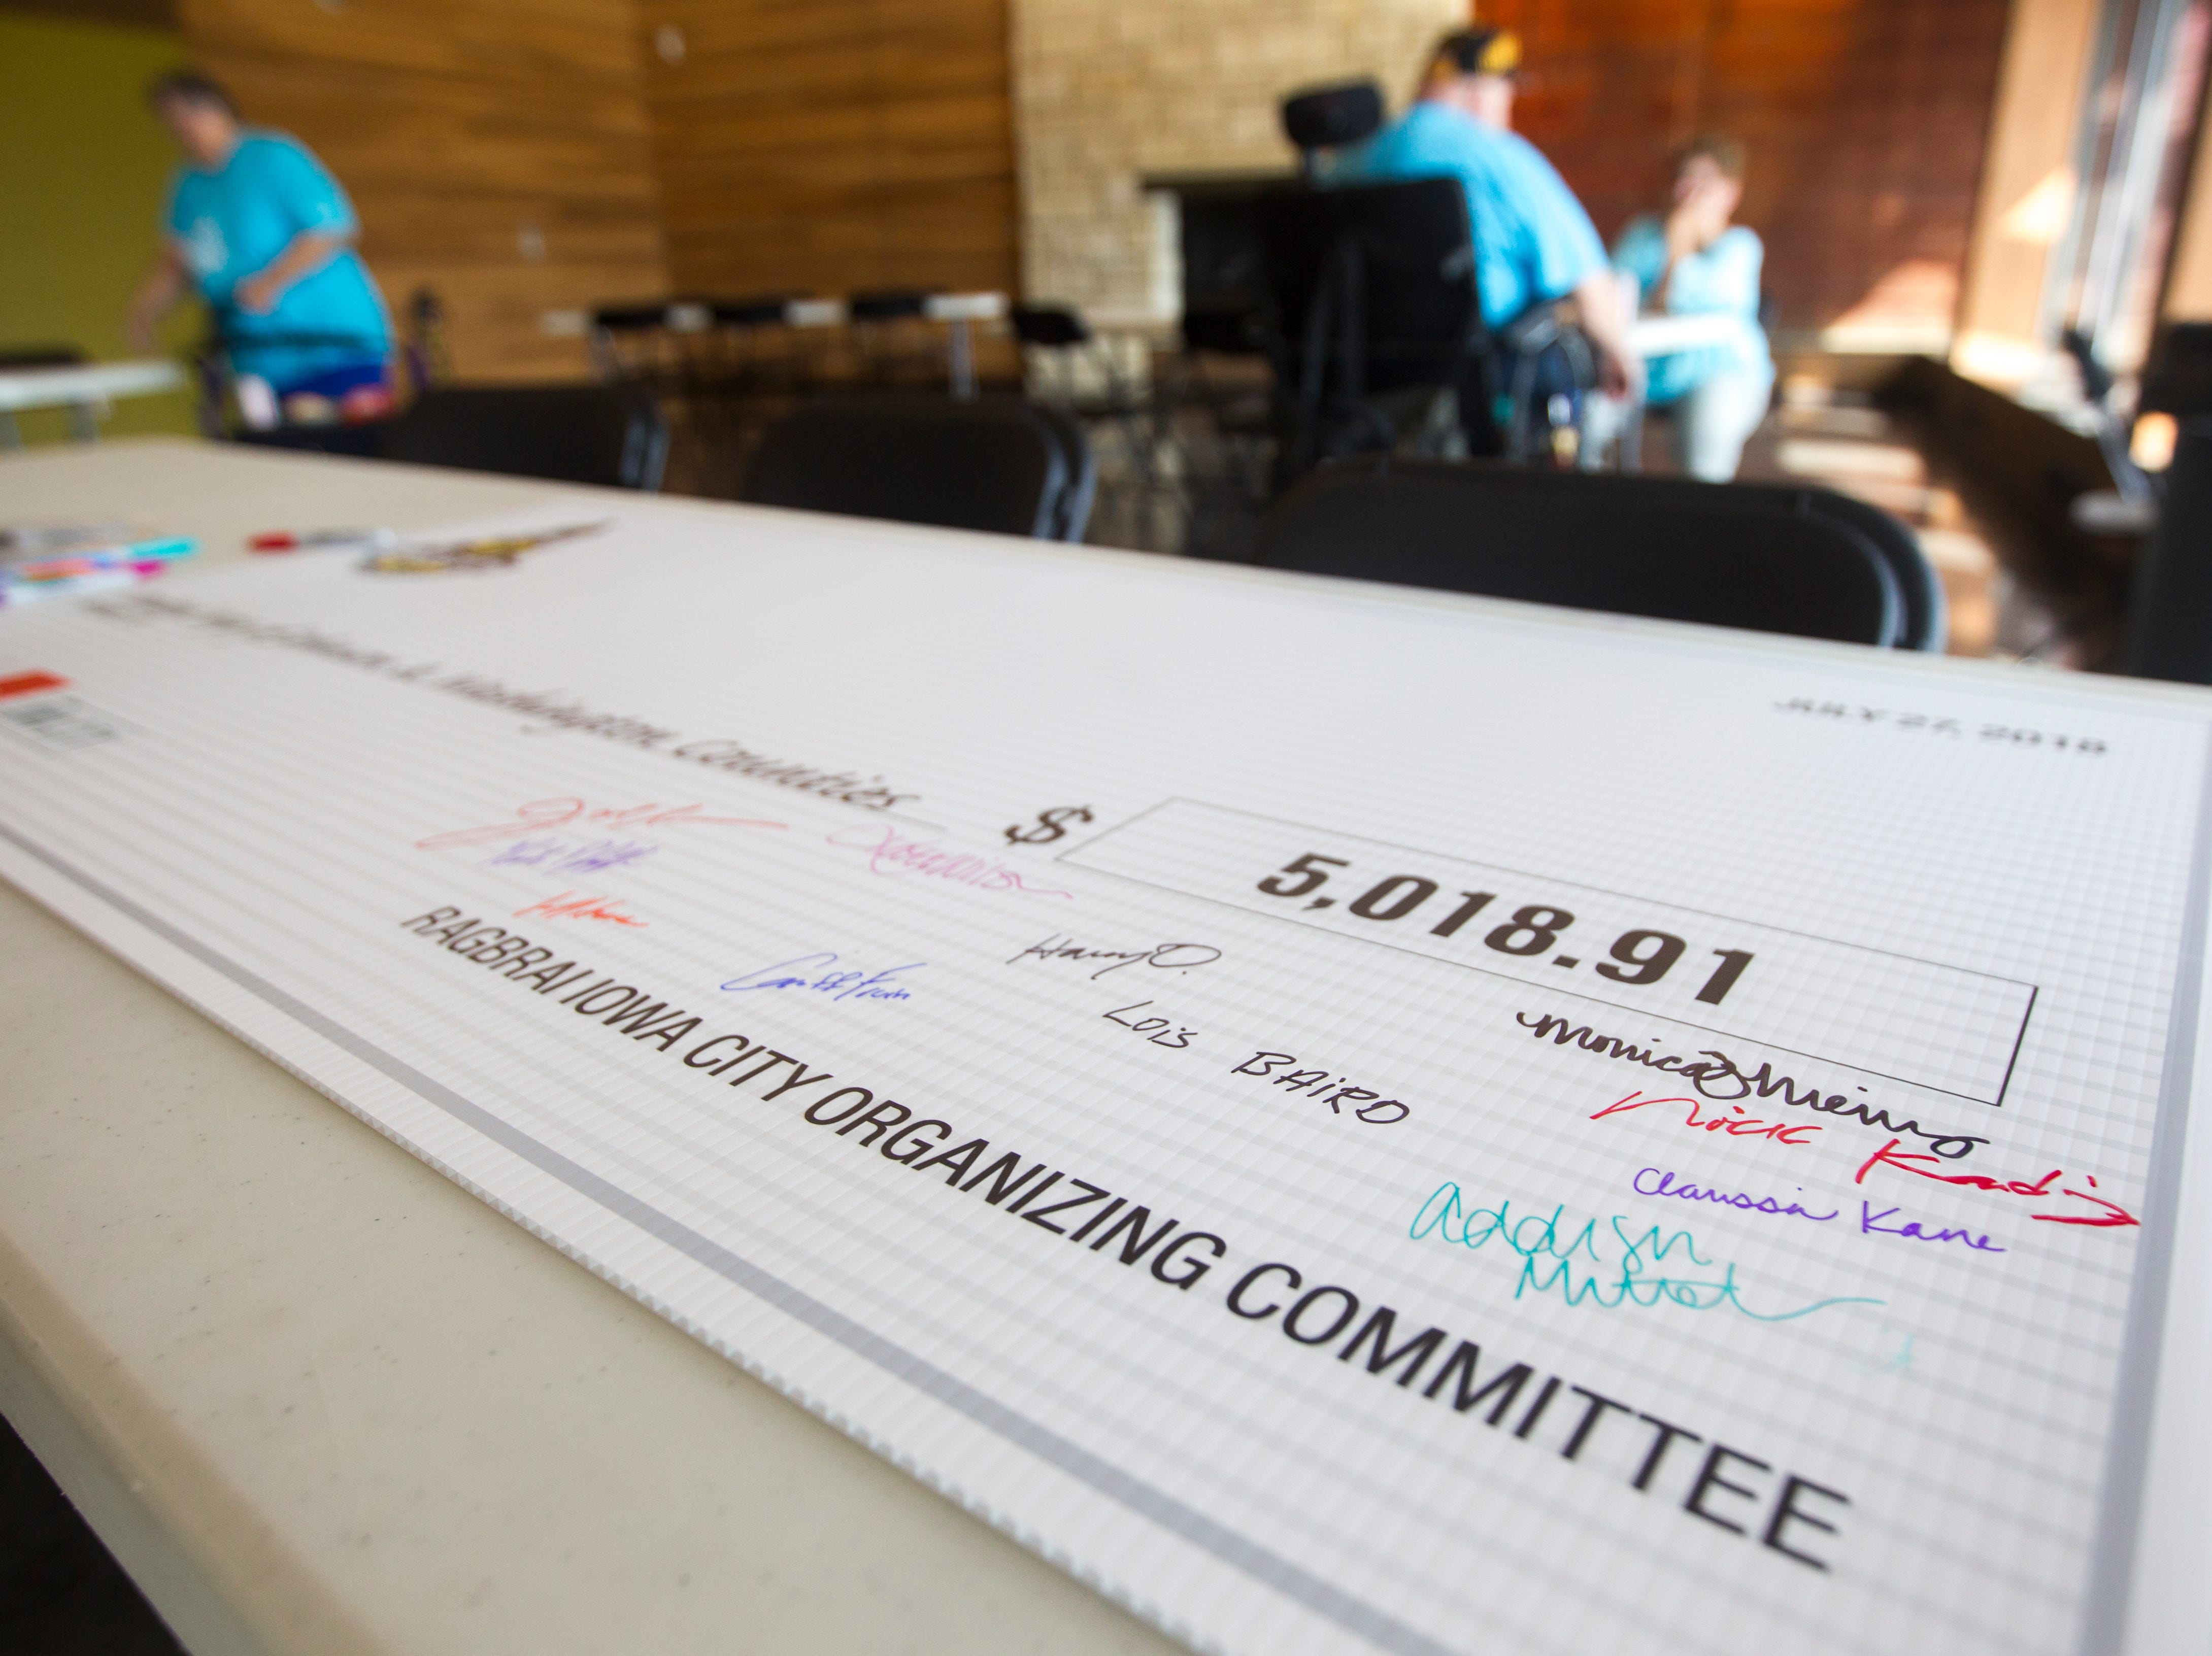 A check to the United Way of Johnson and Washington Counties sits out to be signed by guests during an event for Iowa City RAGBRAI volunteers on Monday, Aug. 27, 2018, inside the Park Lodge at Terry Trueblood Recreation Area in Iowa City.